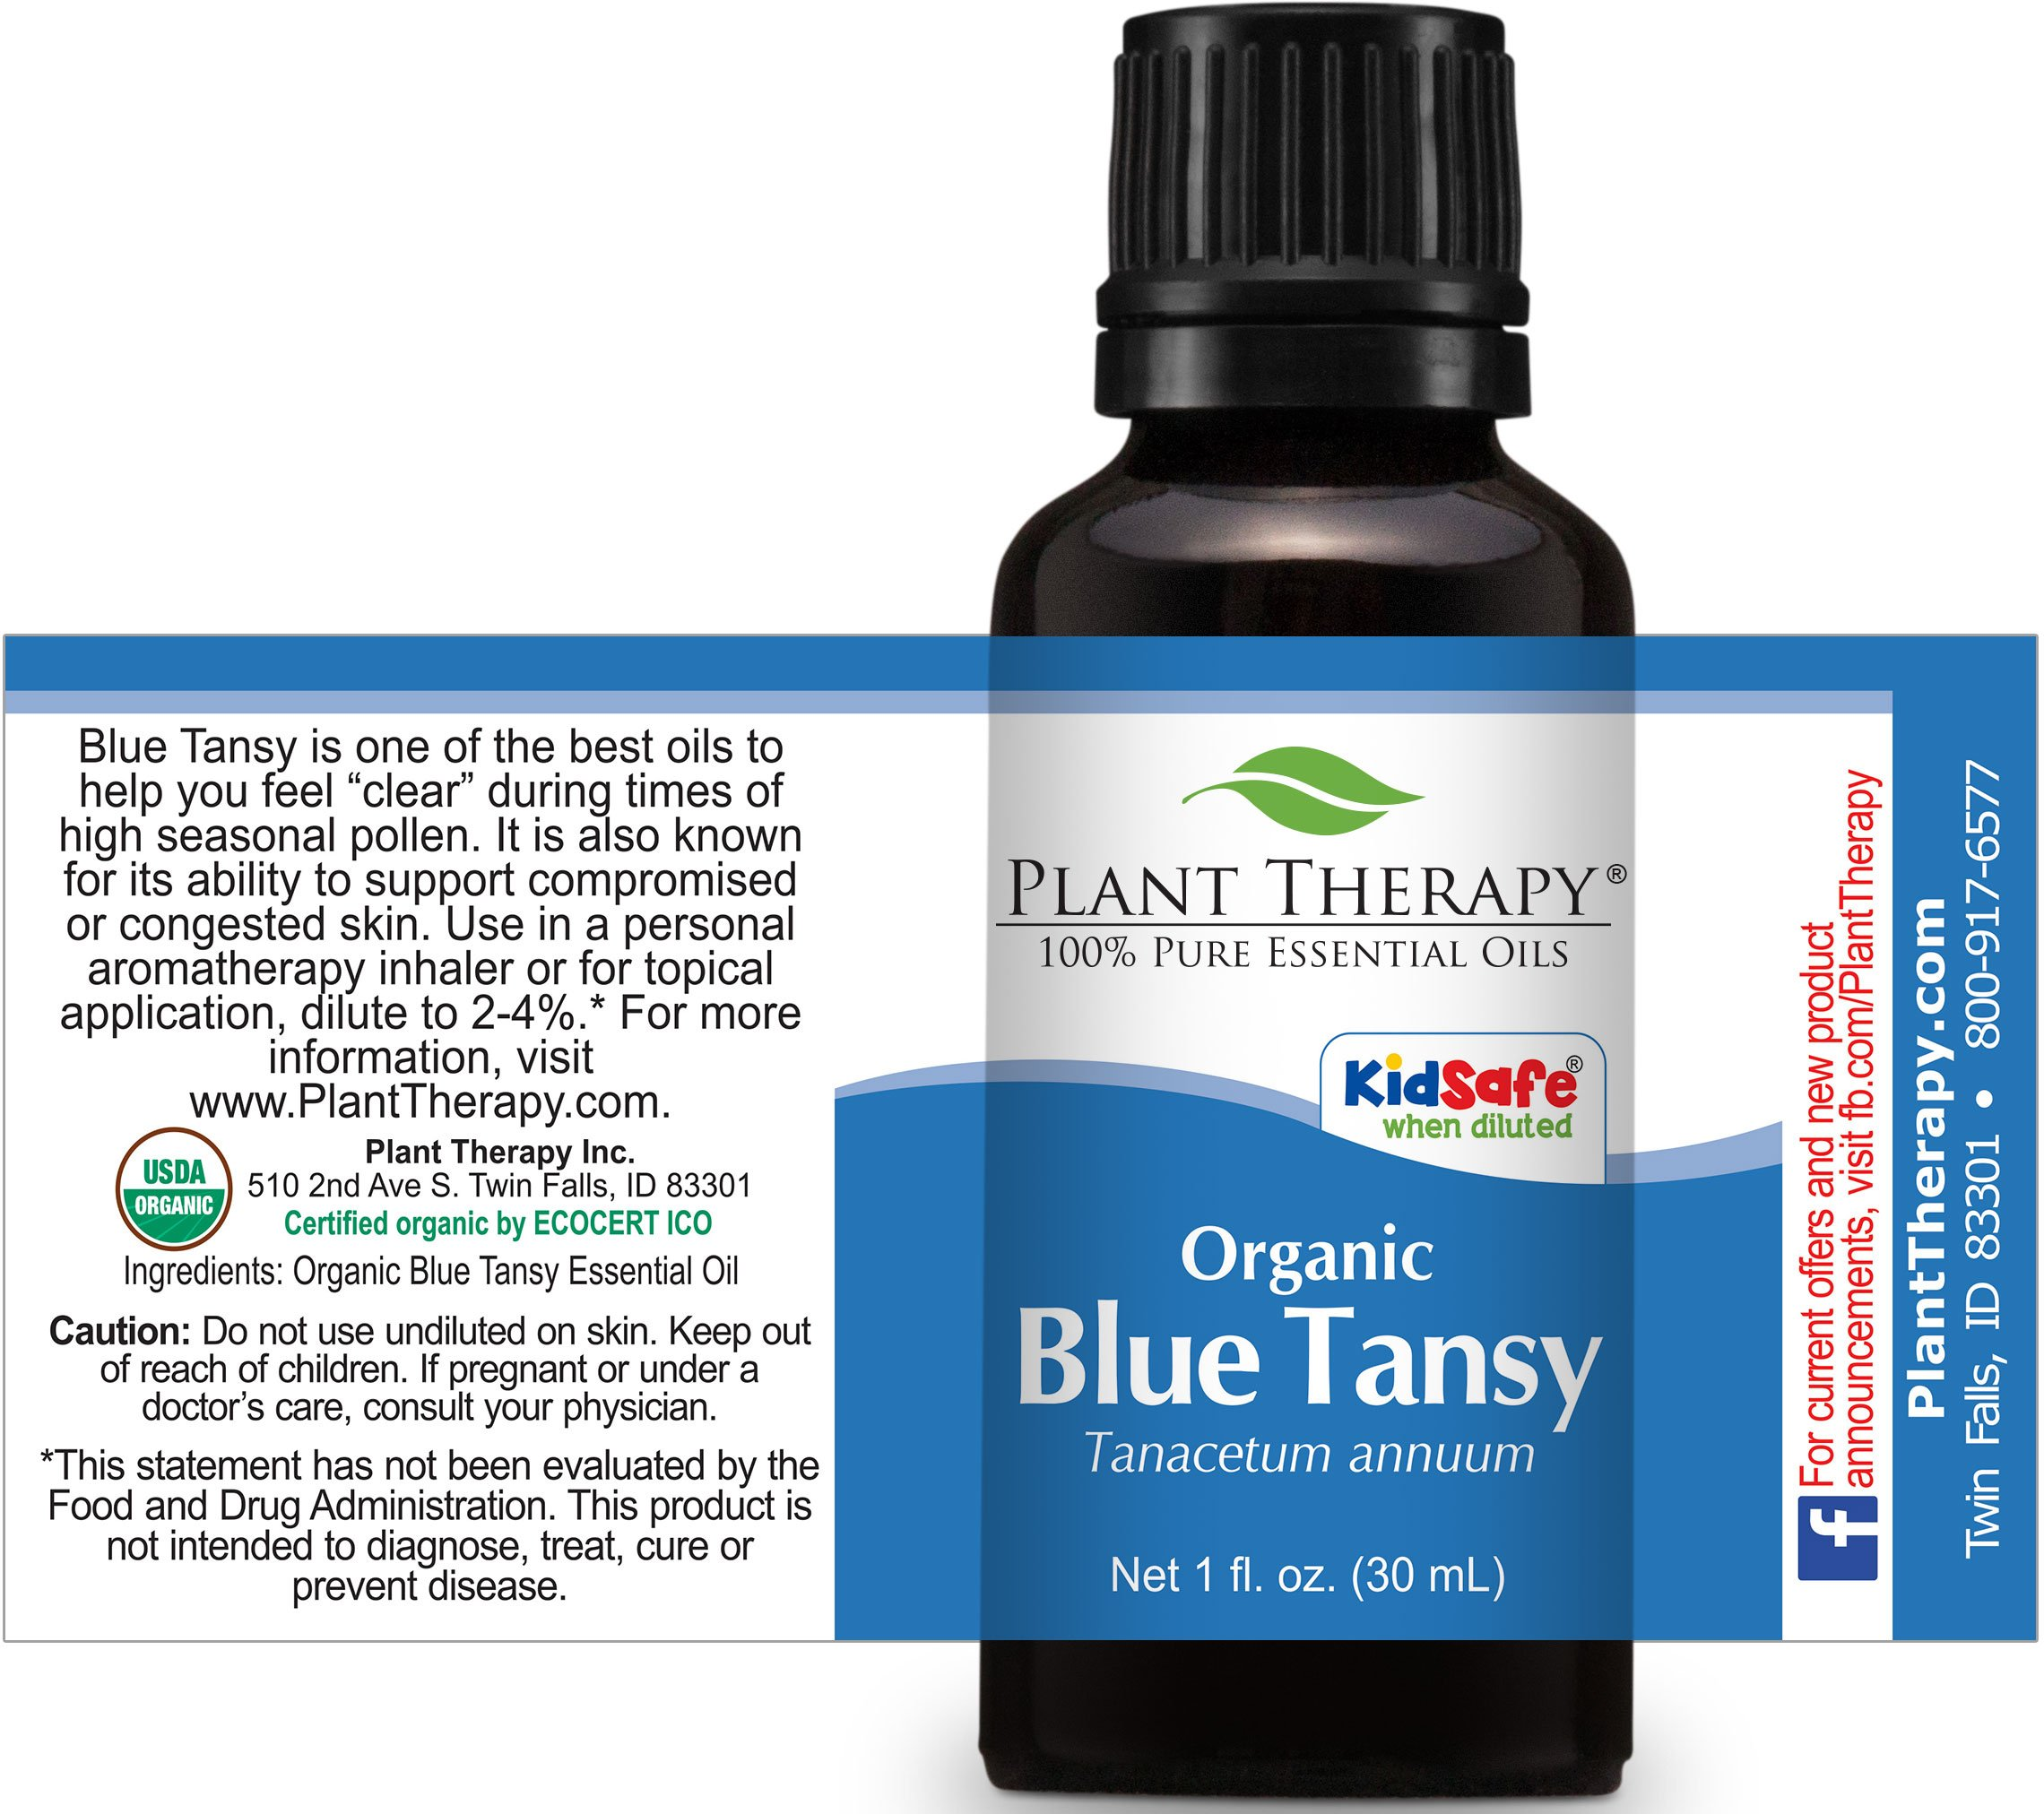 Plant Therapy USDA Certified Organic Blue Tansy Essential Oil. 100% Pure, Undiluted, Therapeutic Grade. 30 ml (1 oz). by Plant Therapy (Image #2)